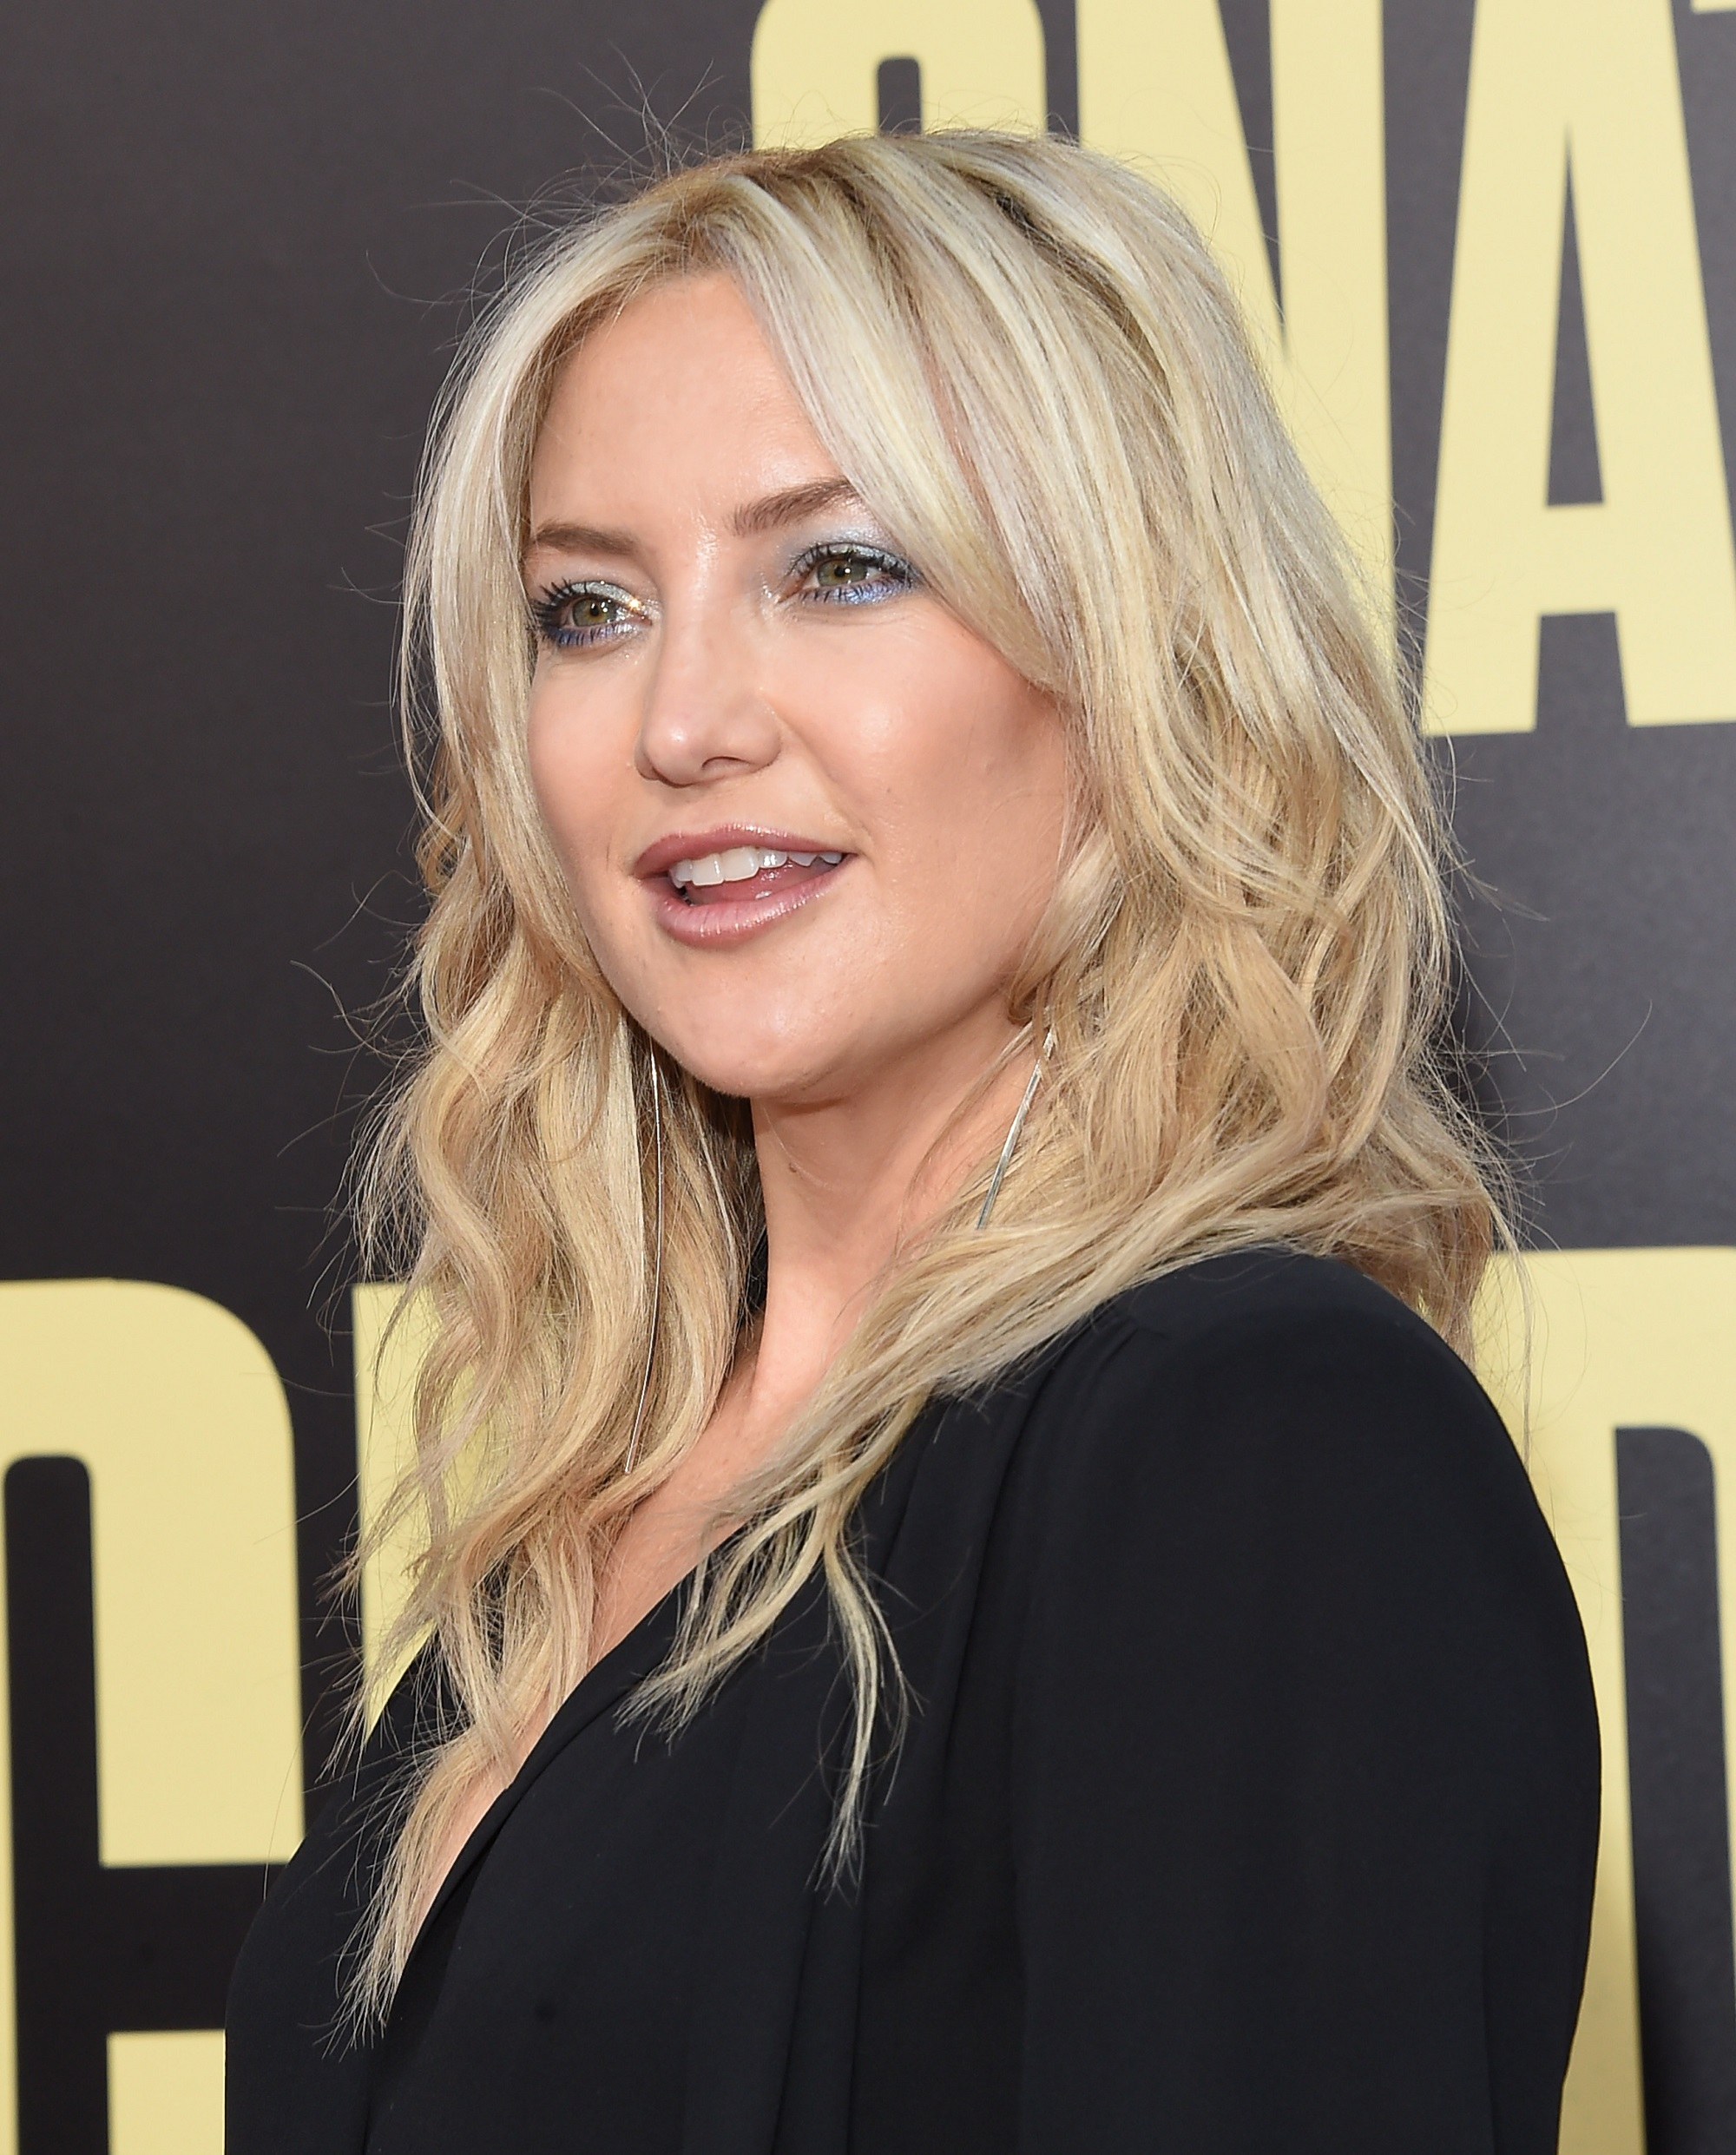 Pregnant Kate Hudson Shows Off Her 'Outie' Belly Button in New Photo